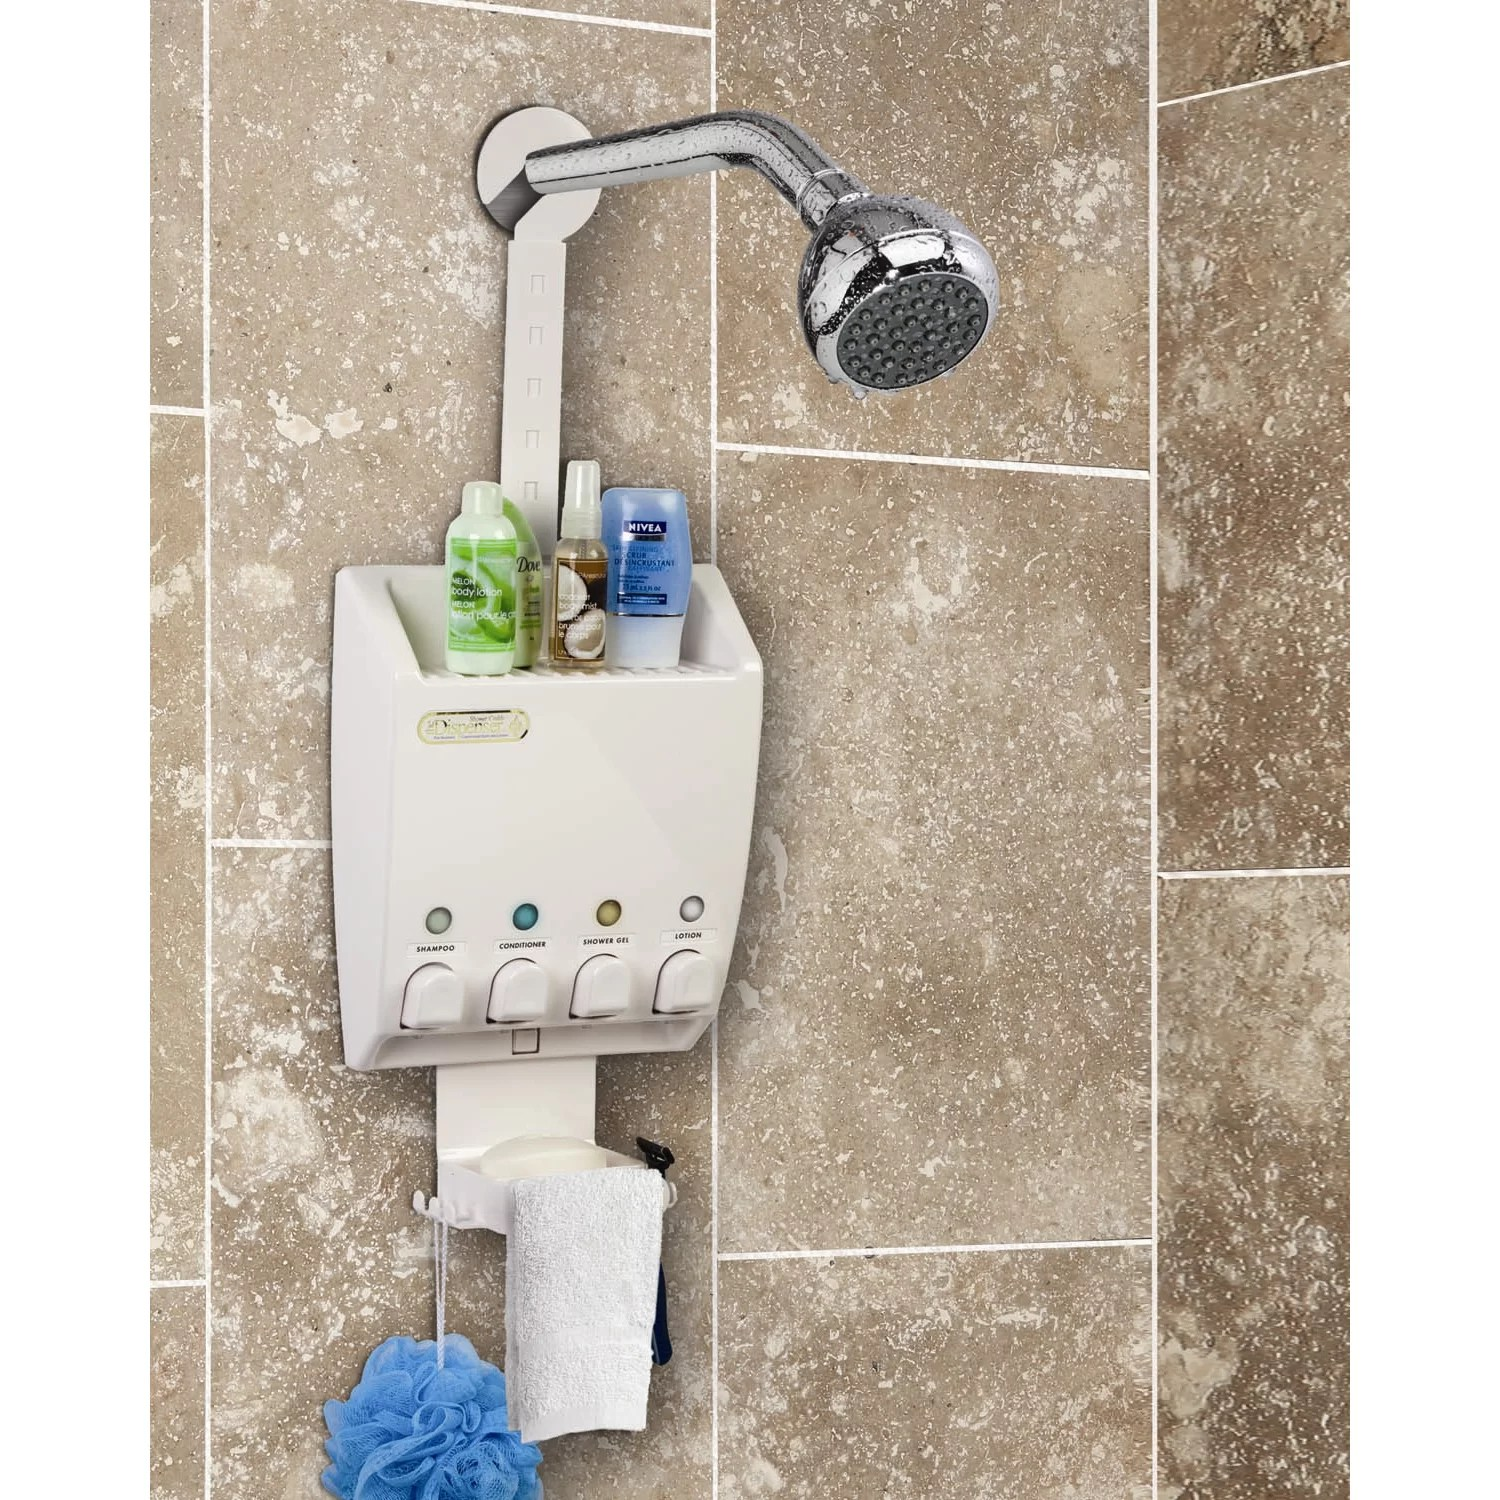 Soap And Shampoo Dispensers For Showers Better Living Products Ulti Mate Soap Dispenser Shower